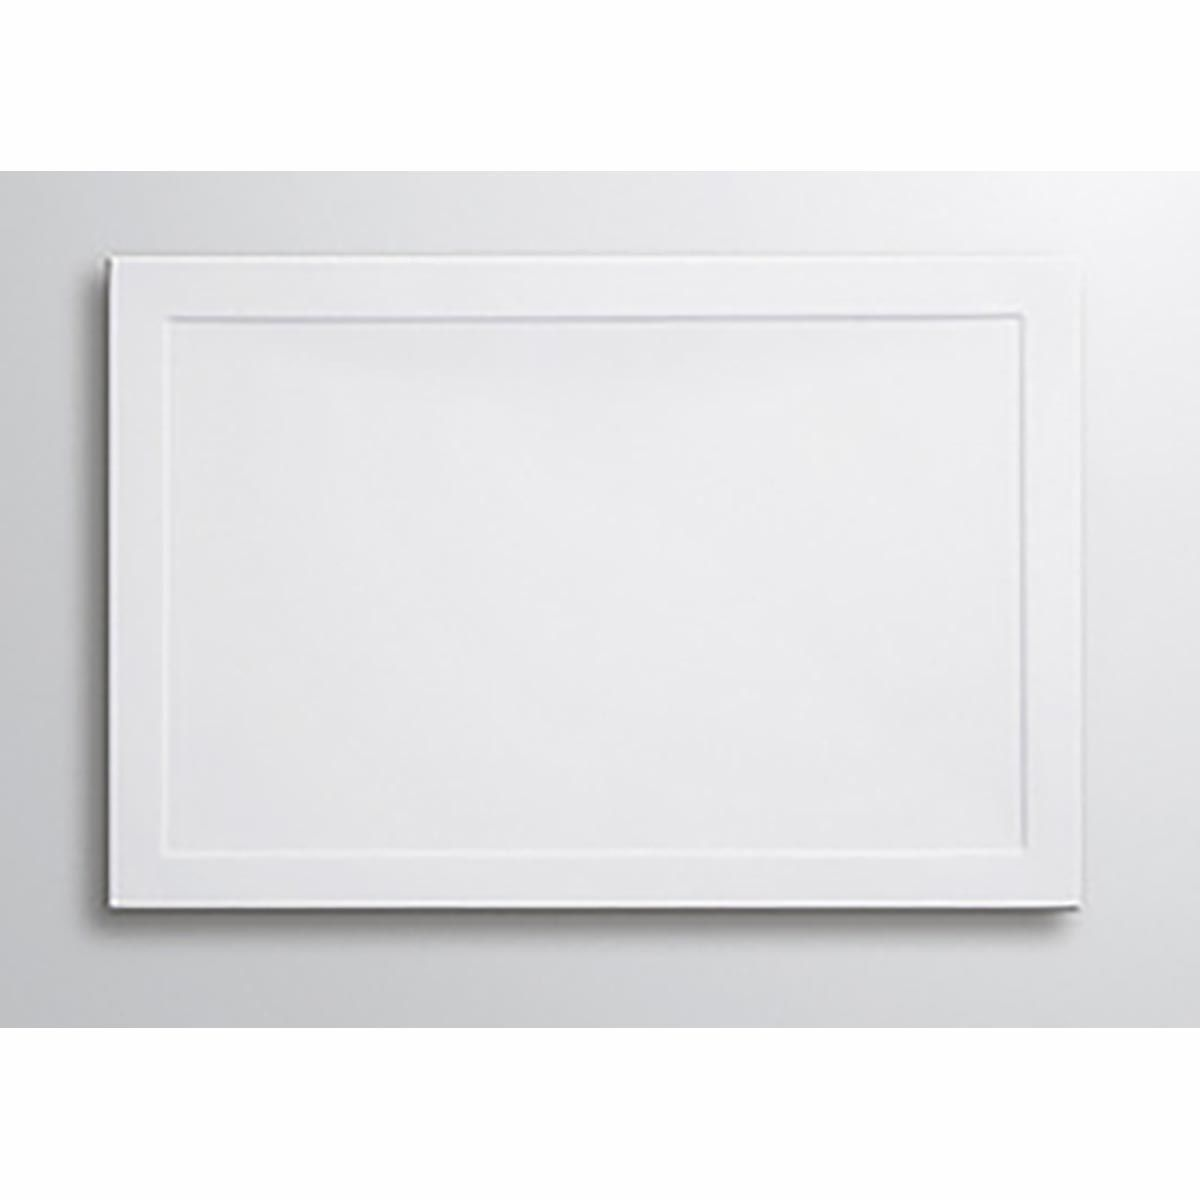 Lakes White Rectangular Stone Resin/ABS Tray 80mm 1000mm X 700mm